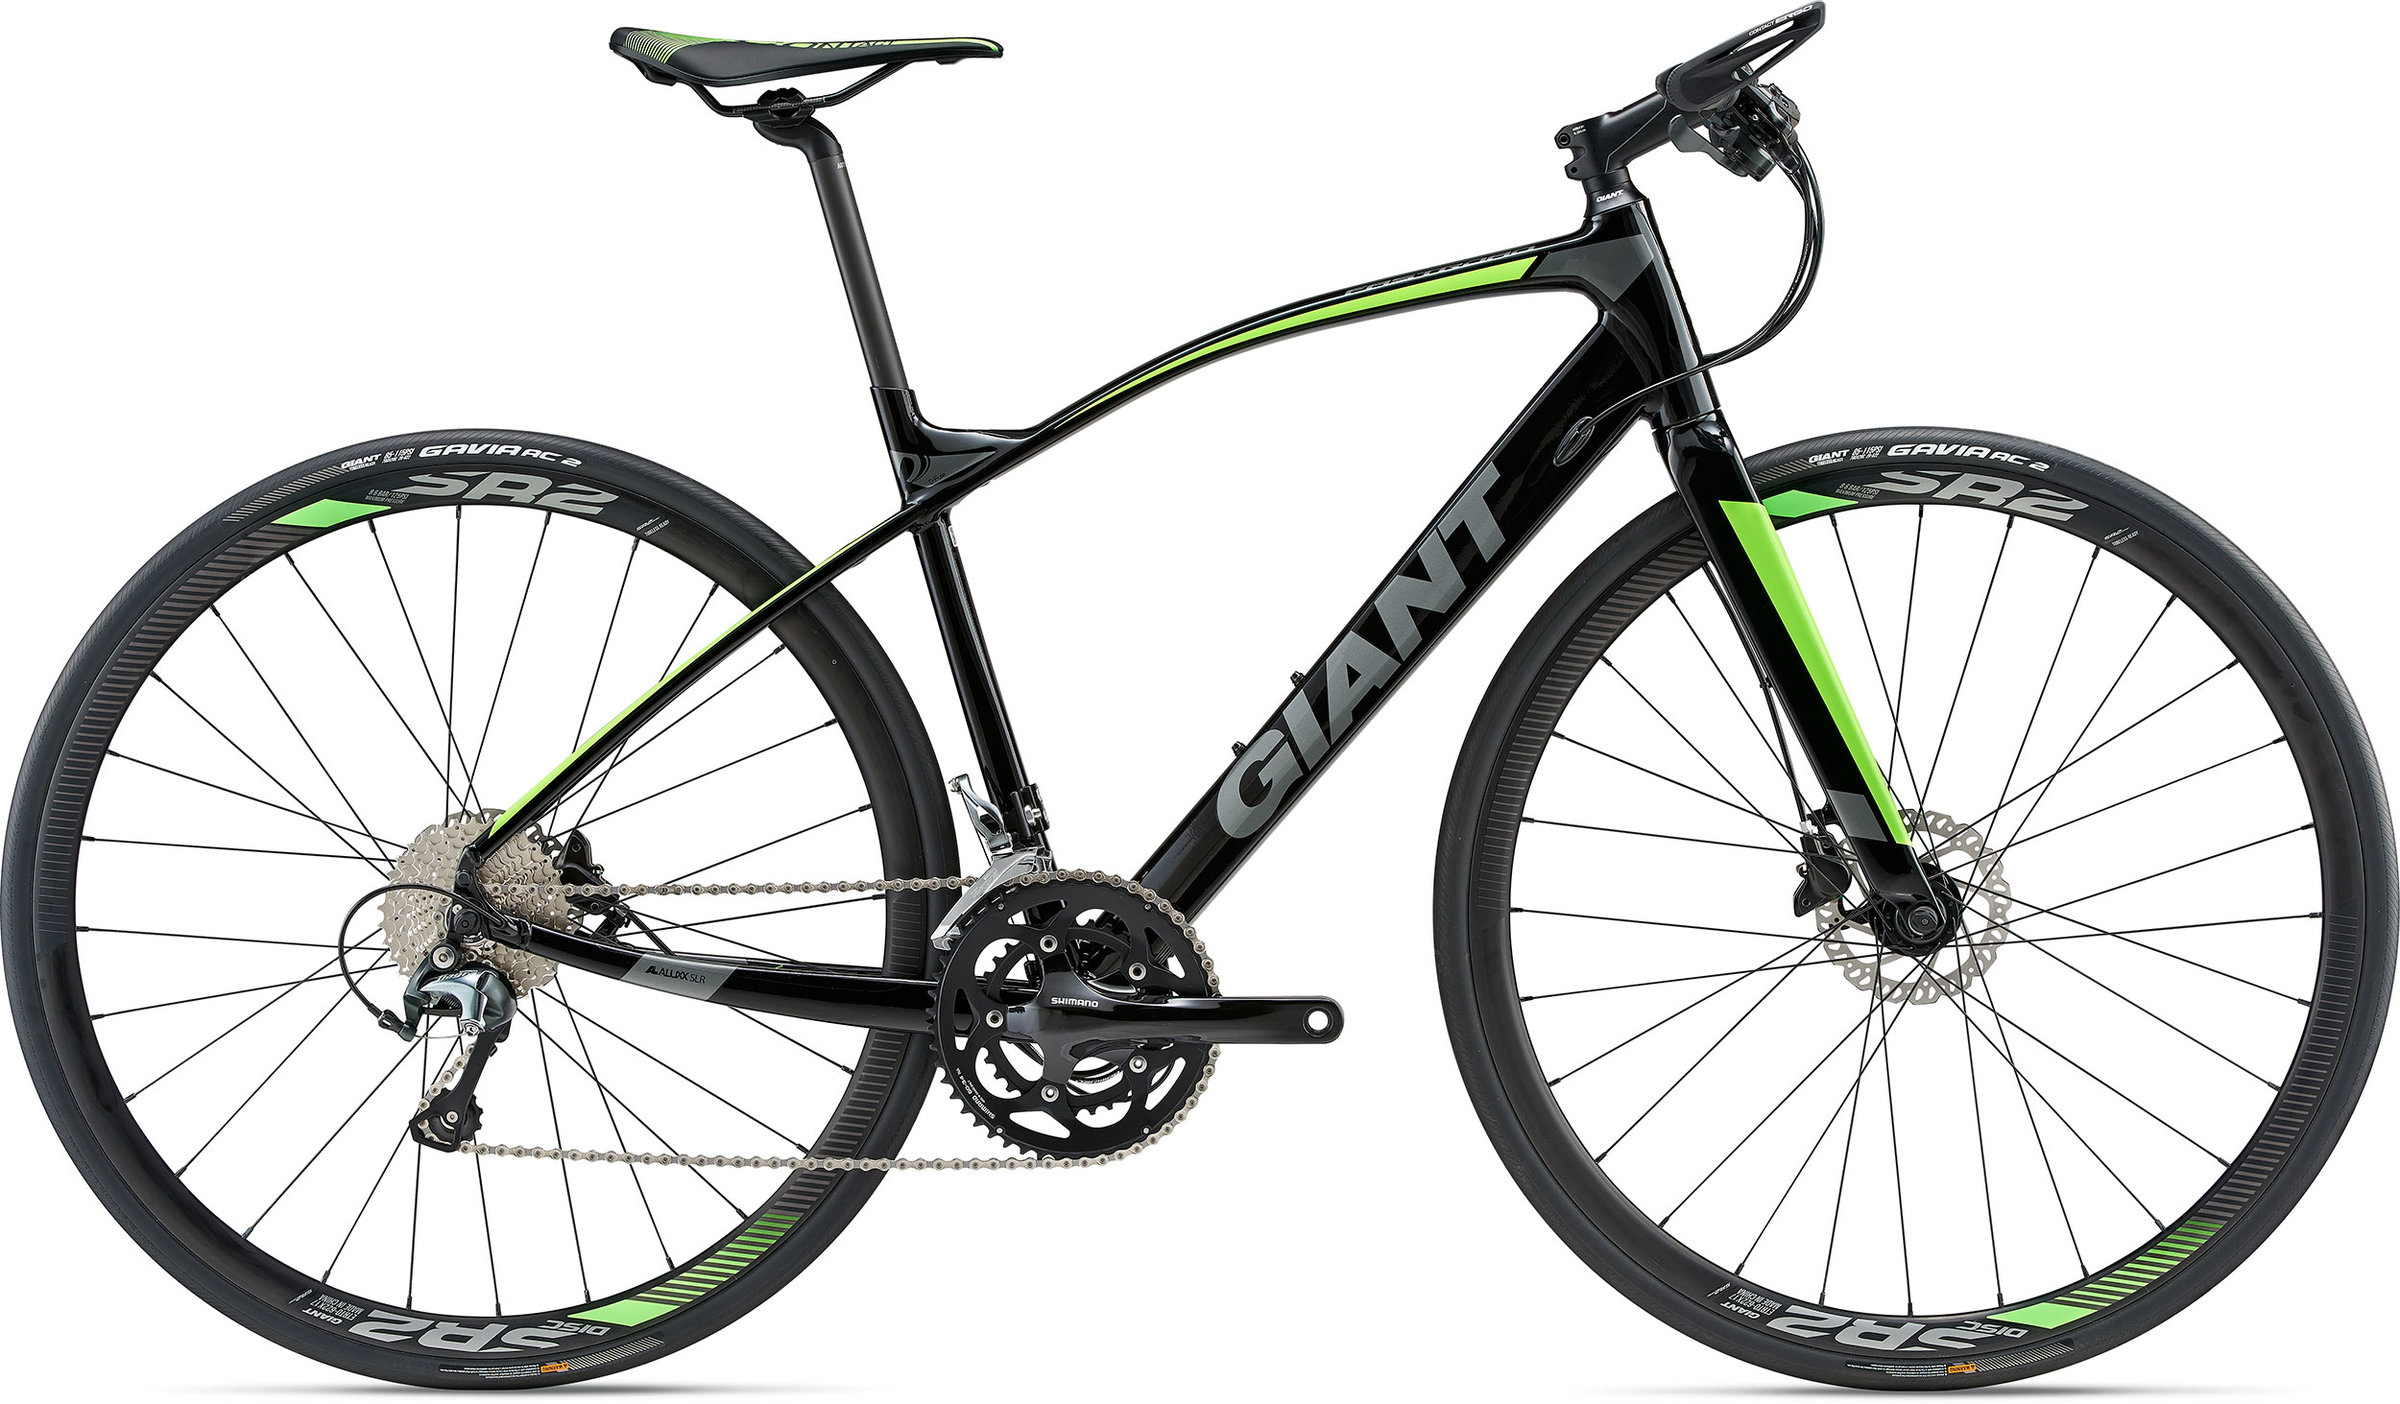 Giant Fastroad Slr 1 Roy S Cyclery Upland California